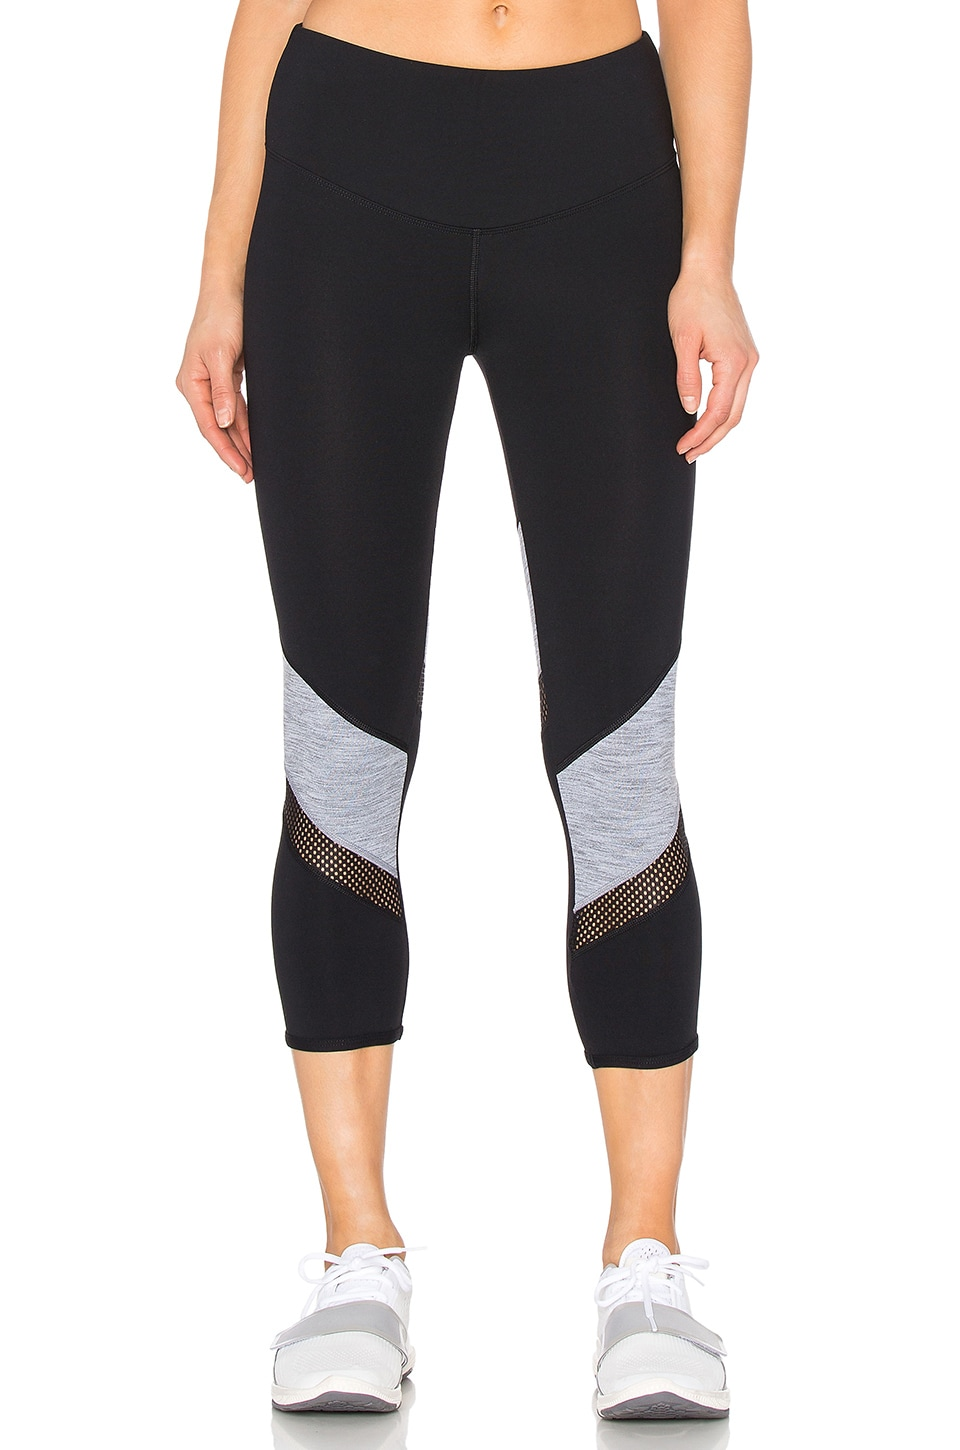 Lorna Jane Stay Strong 7/8 Legging in Black & Mid Grey